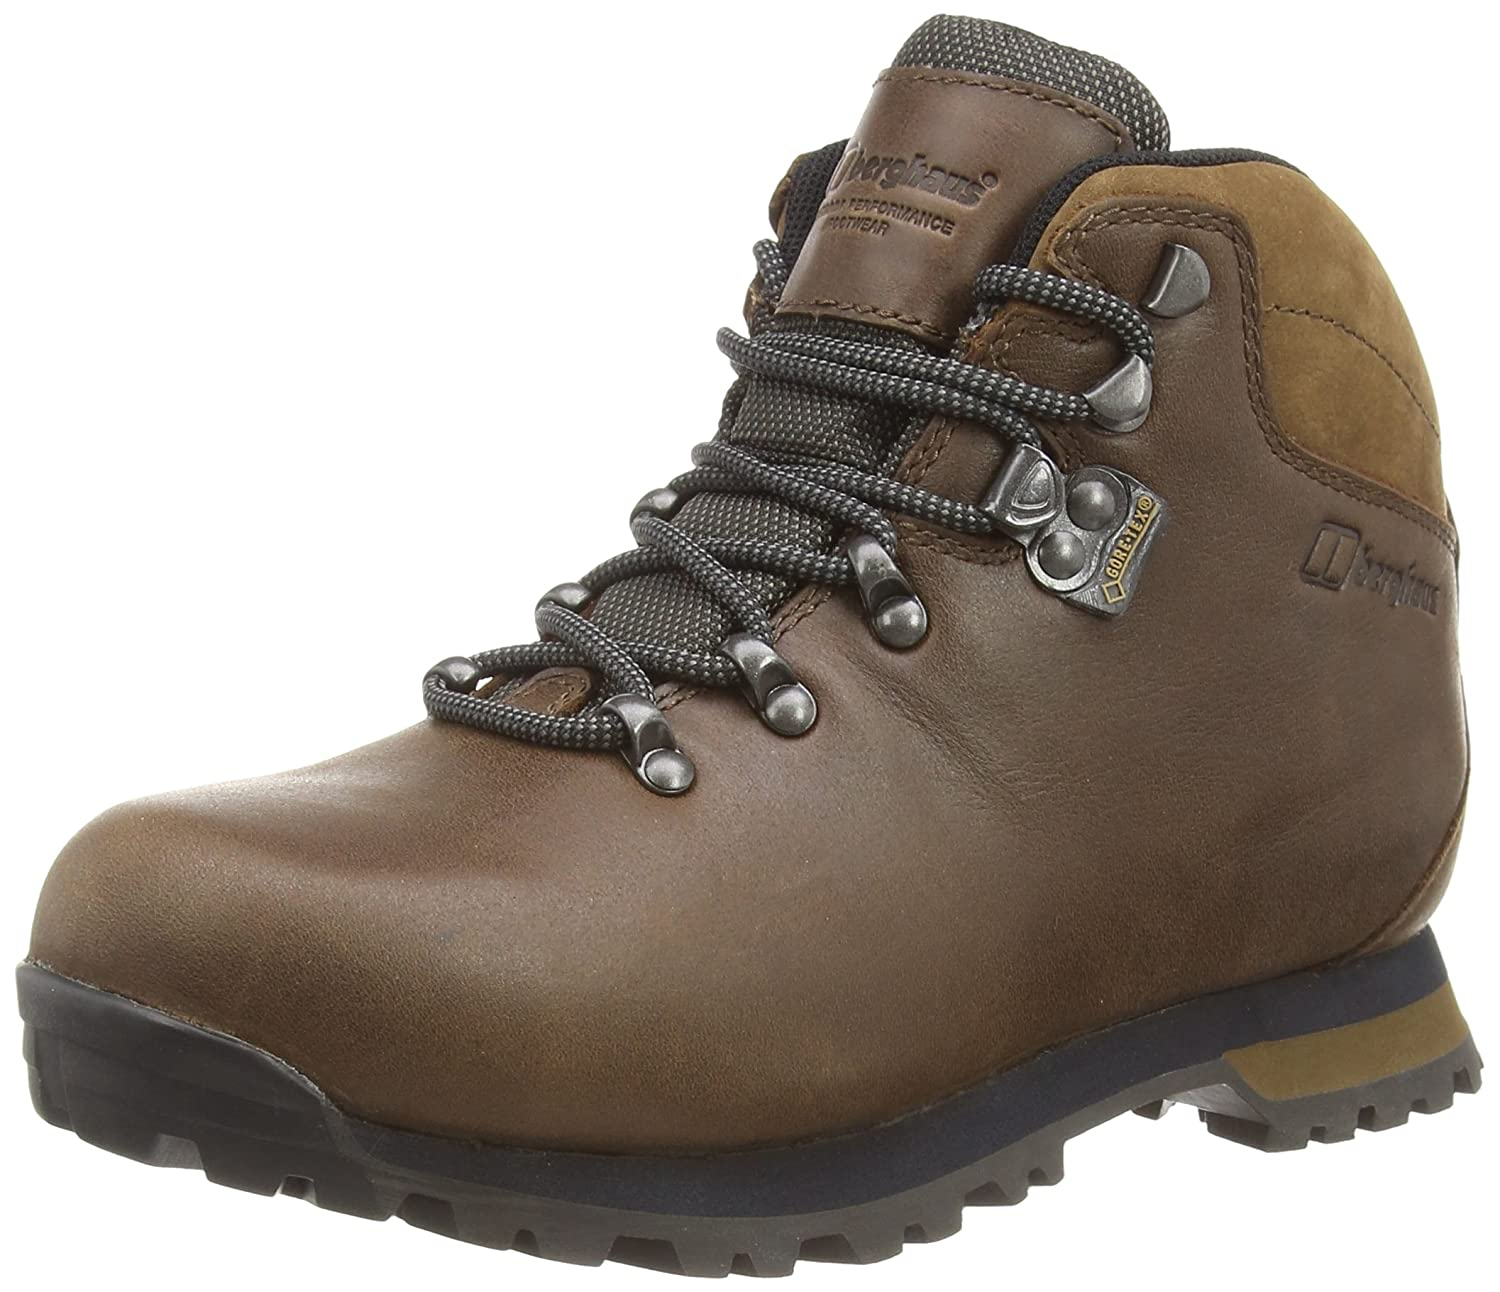 Free Shipping Footaction For Sale For Sale Mens Hillwalker 2 GTX Boot Berghaus Free Shipping Shop For l41bfMB